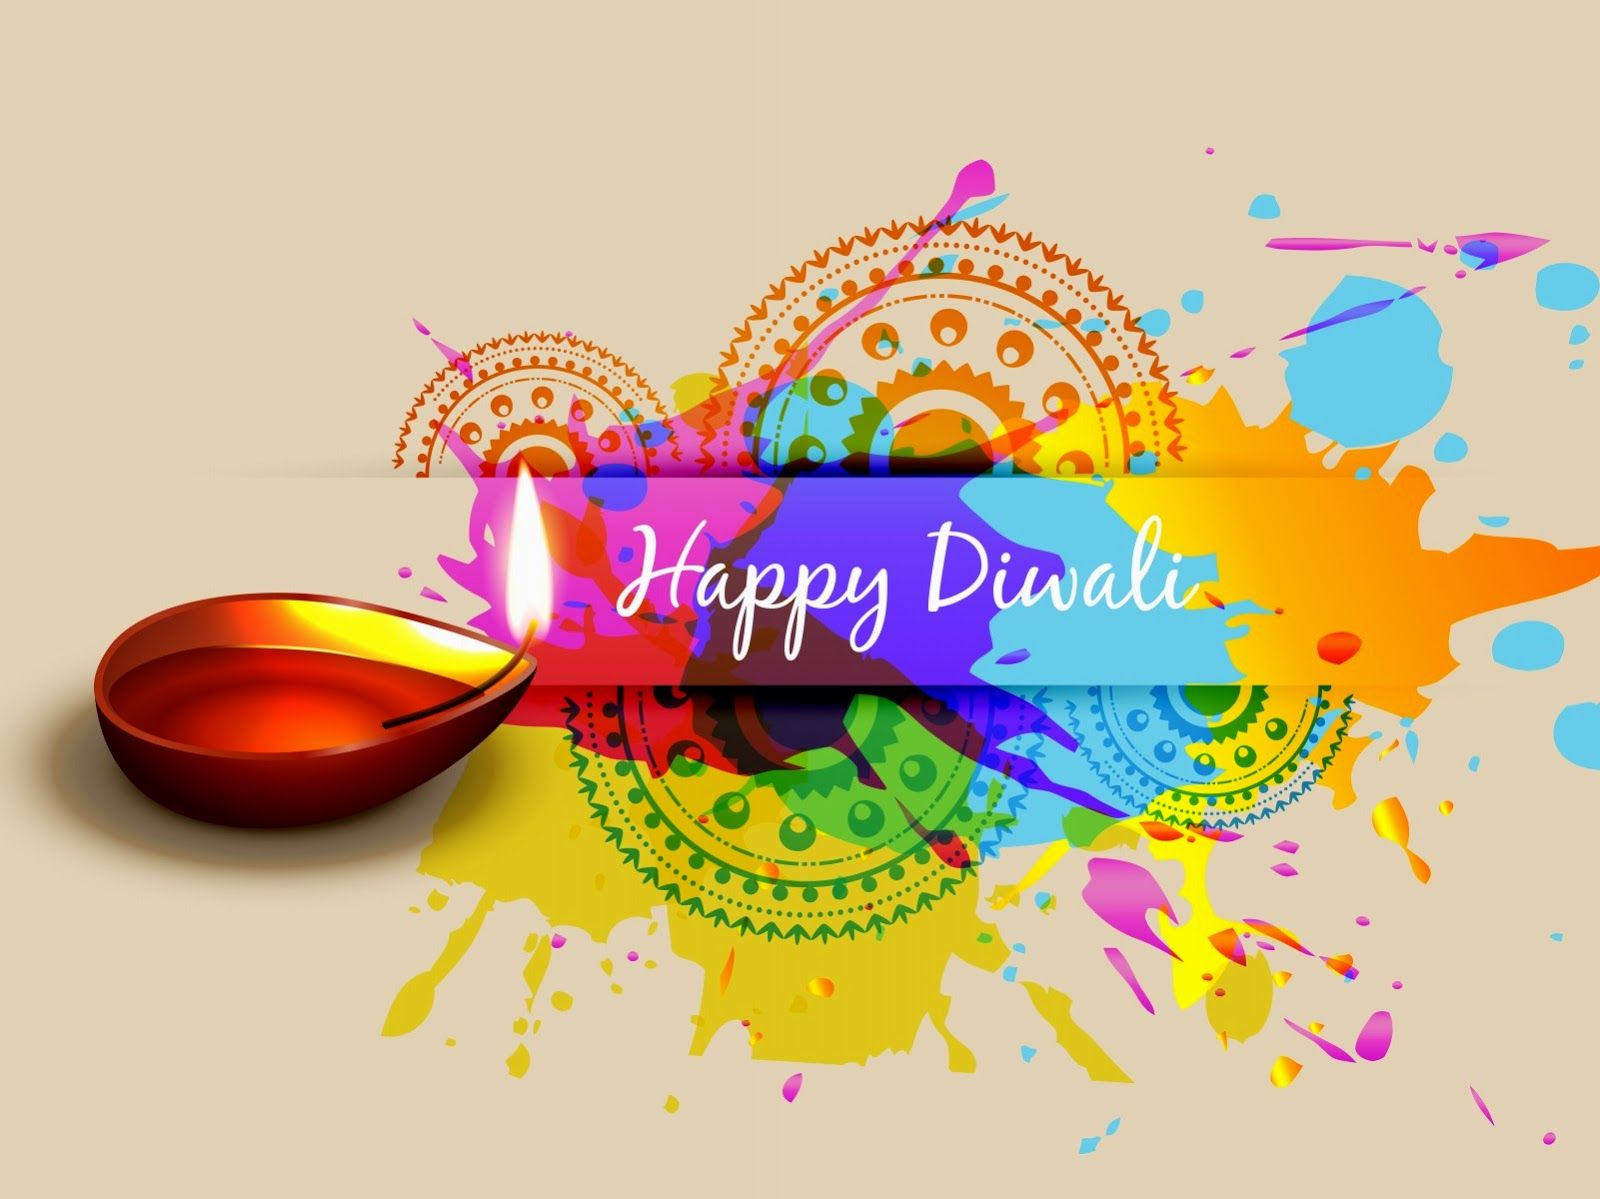 Happy Diwali Greeting Cardg 16001199 Misc Mostly Indian